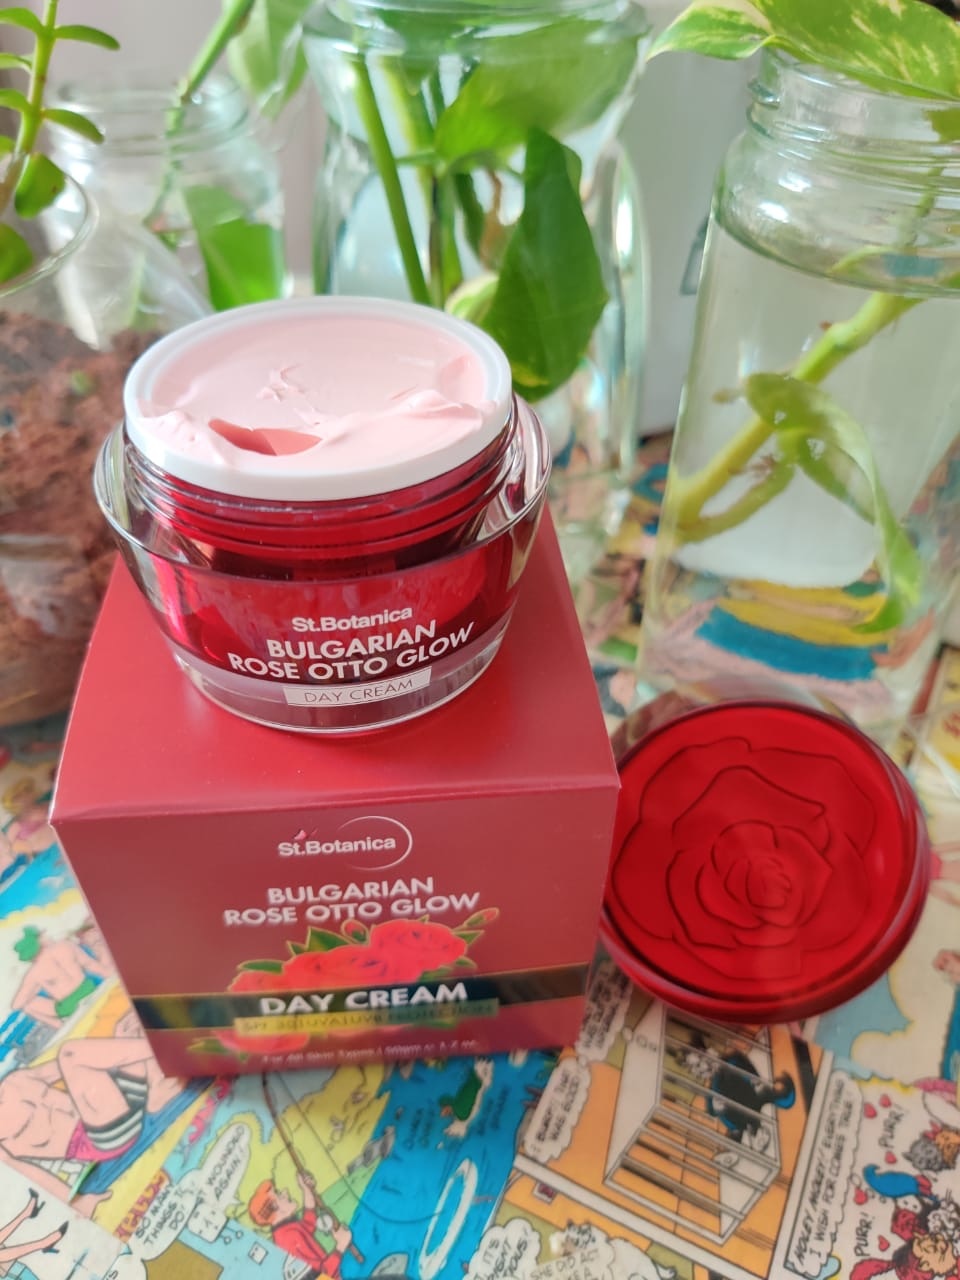 St.Botanica Bulgarian Rose Otto Glow Day Cream-YOU NEED TO TRY THIS TO BELIEVE IT!!-By shwethanag27